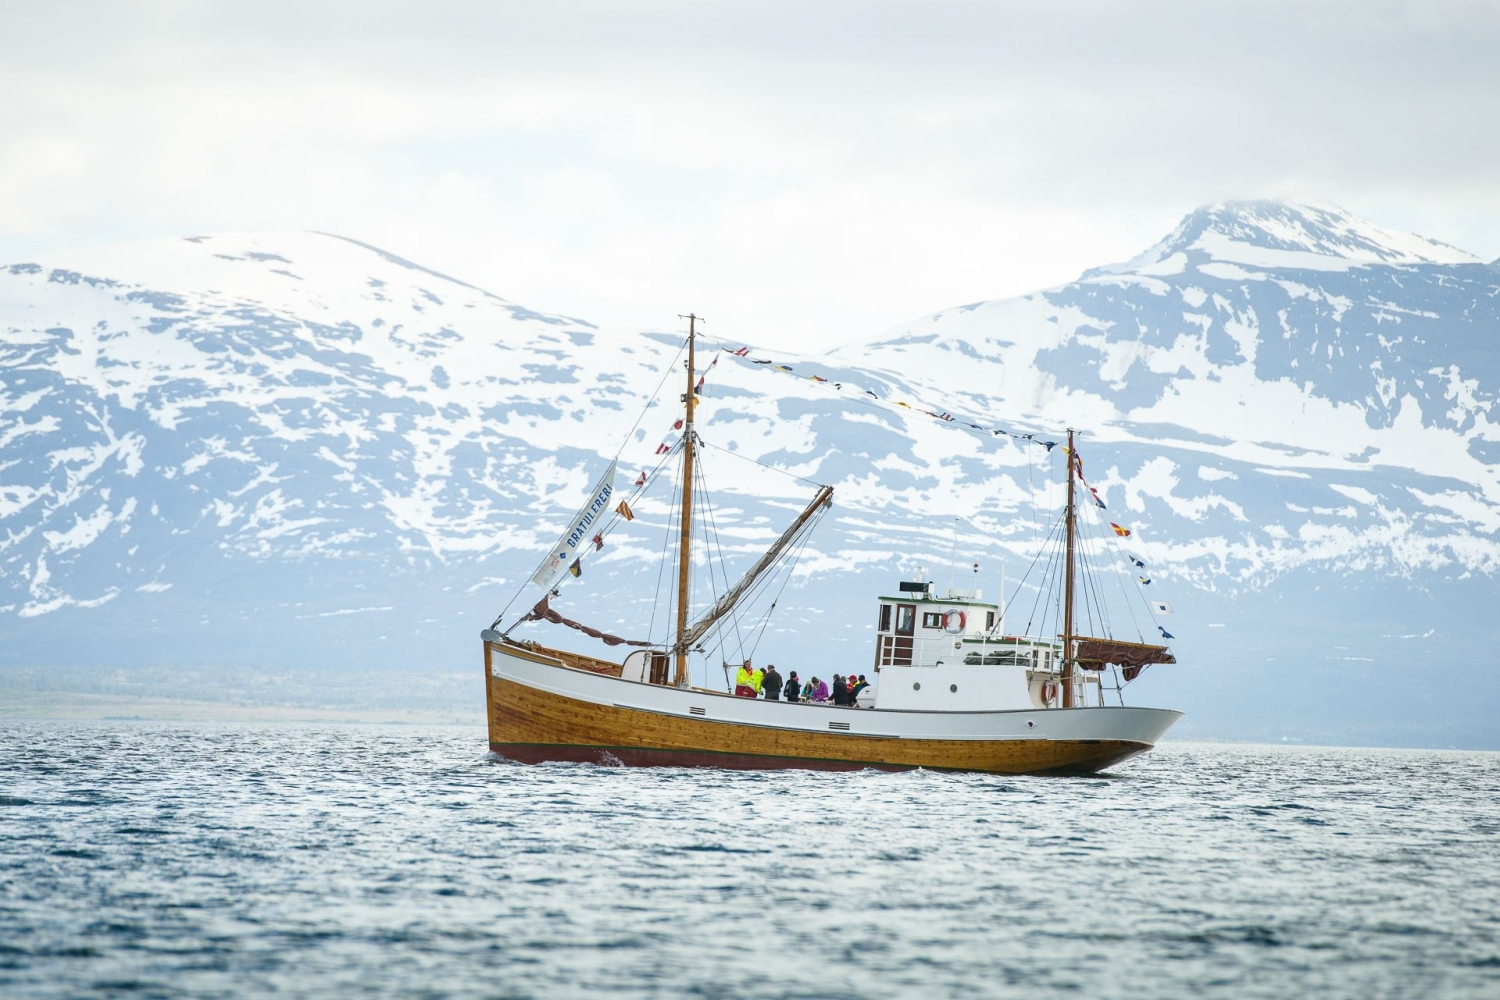 The wooden boat Hermes II out on the sea with snowy mountains in the background